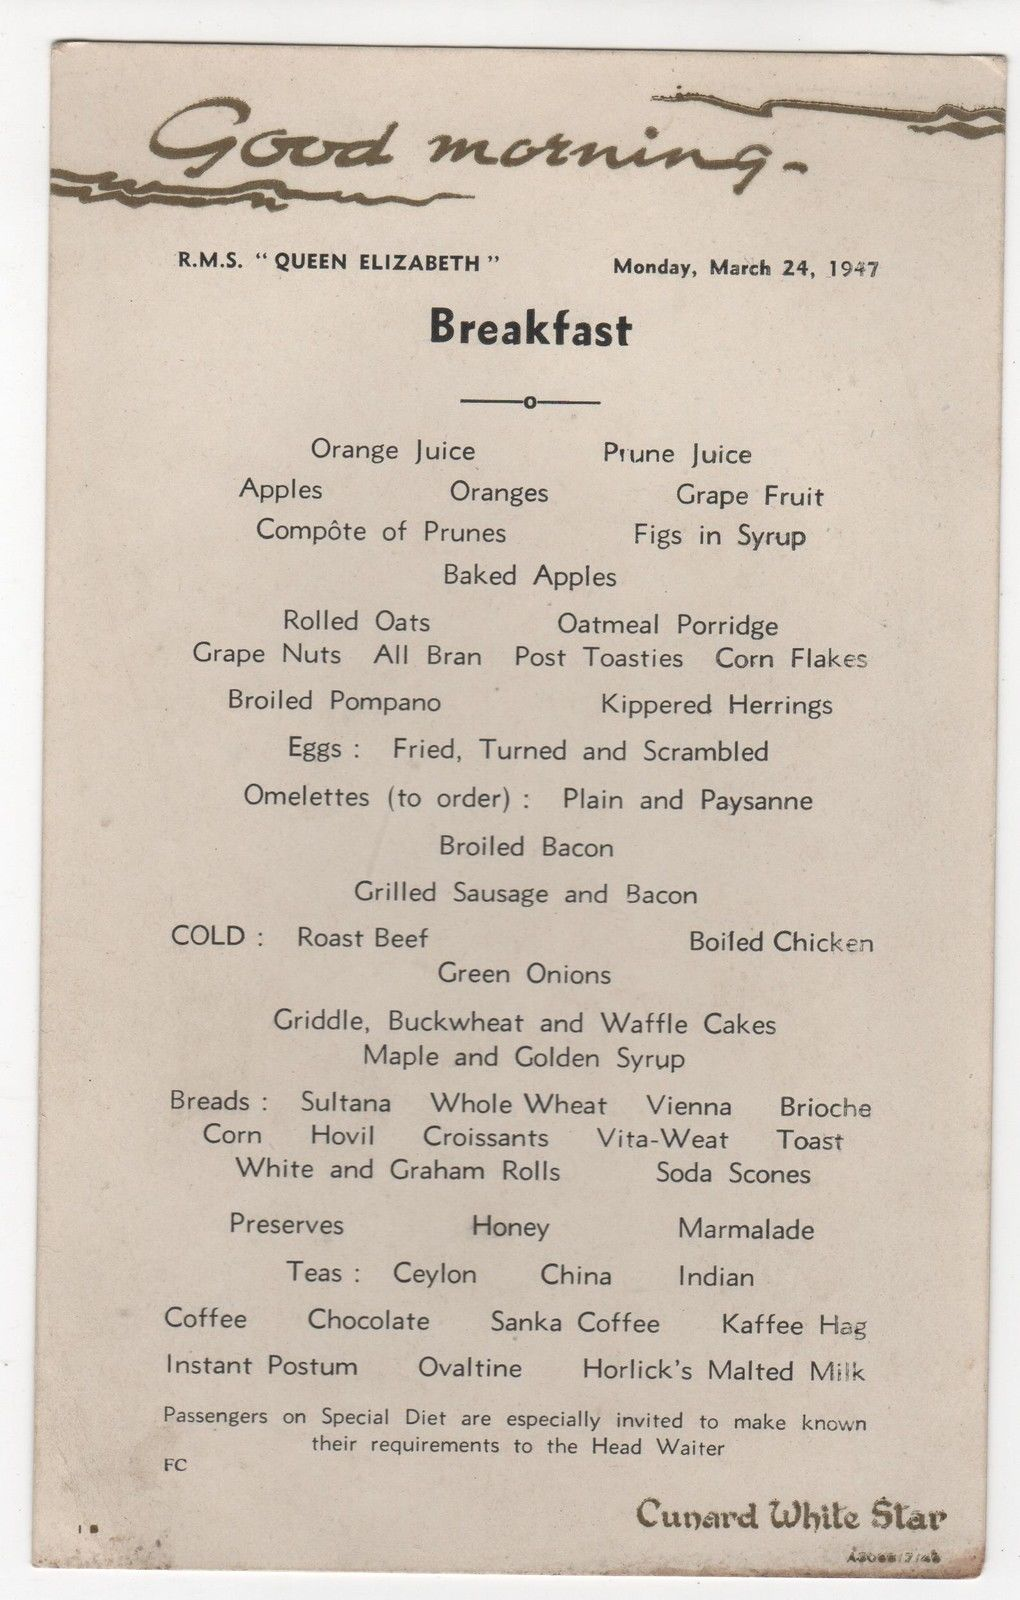 Breakfast menu on the RMS Queen Elizabeth in 1947.